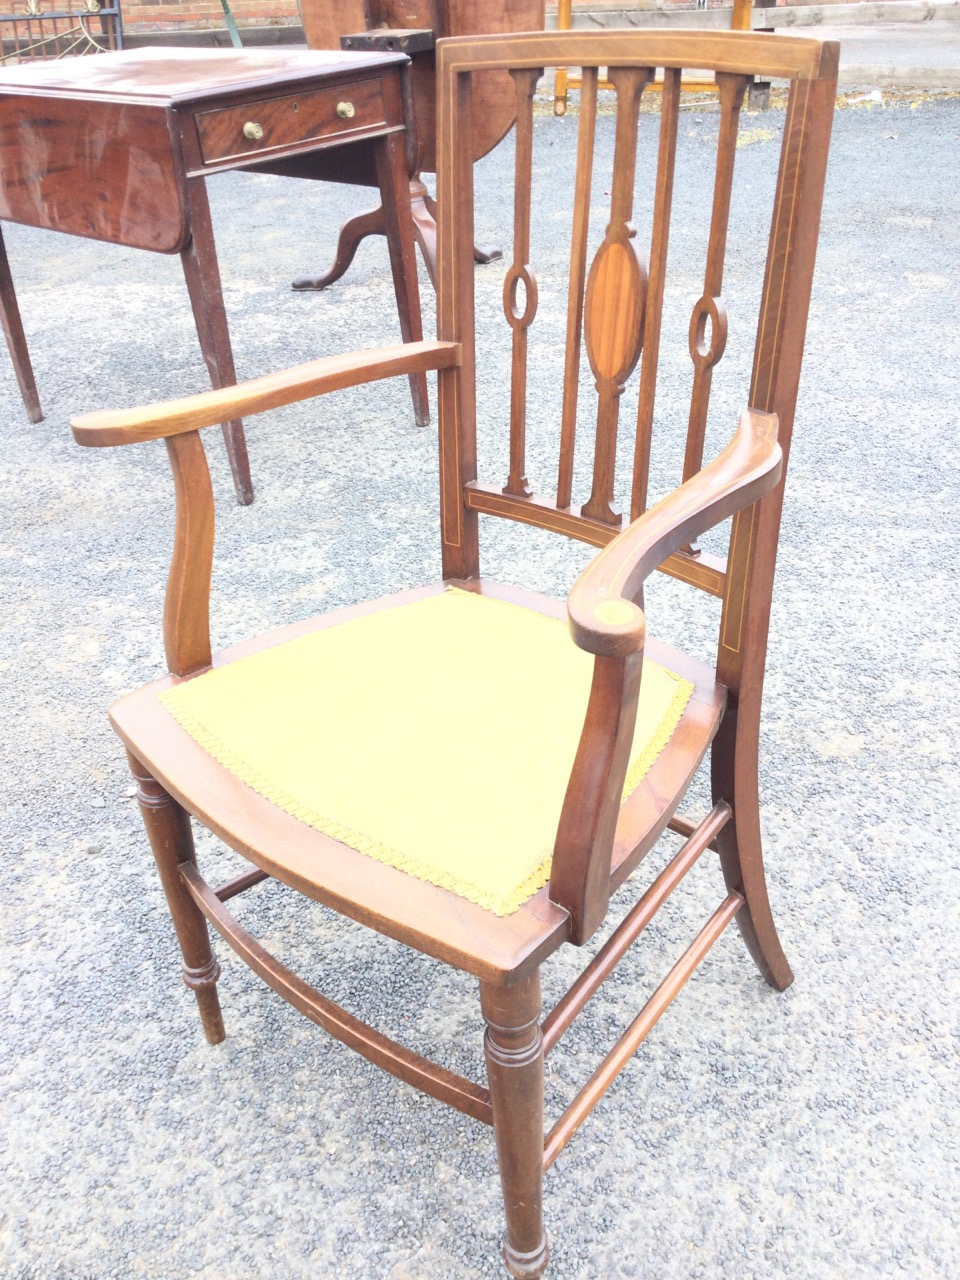 An Edwardian mahogany armchair inlaid with boxwood stringing, the back with slender spindles - Image 2 of 3